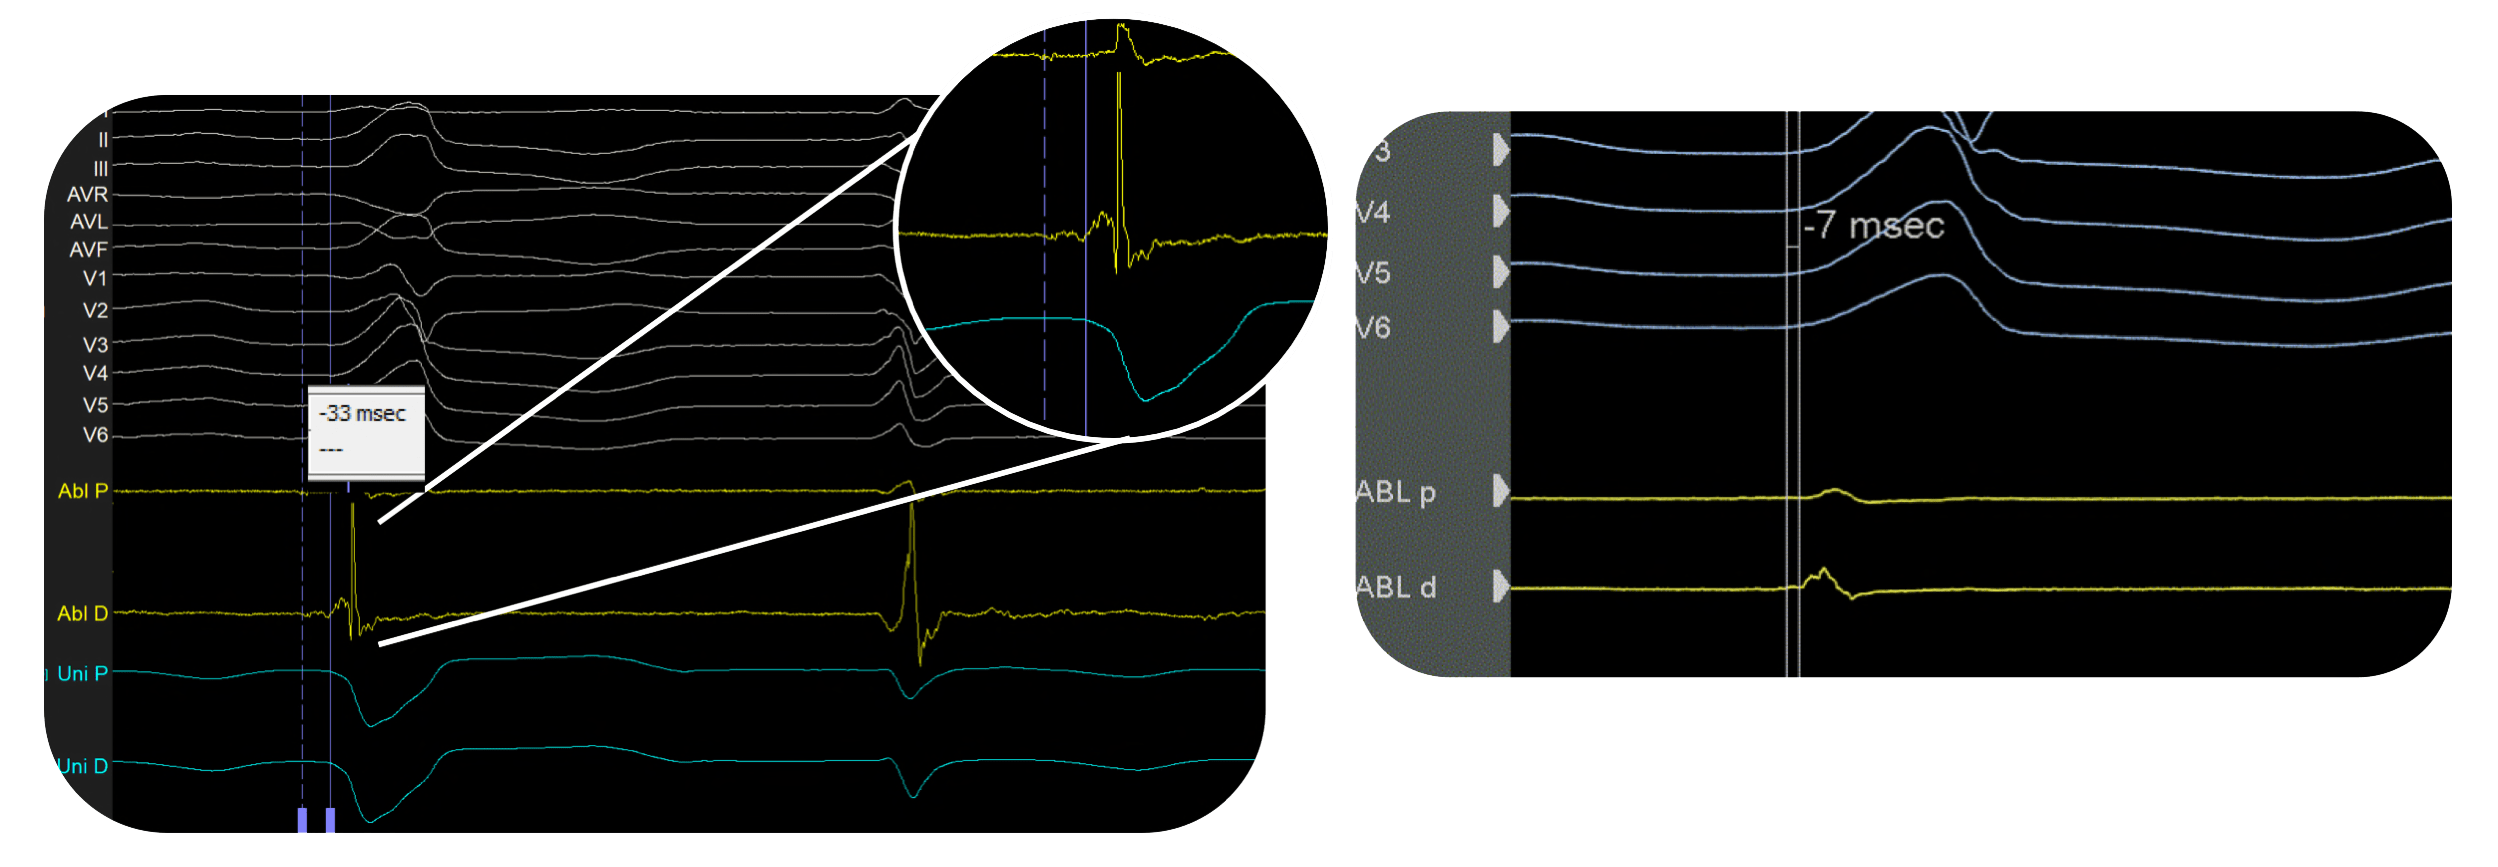 PURE EP - Premature Ventricular Contraction